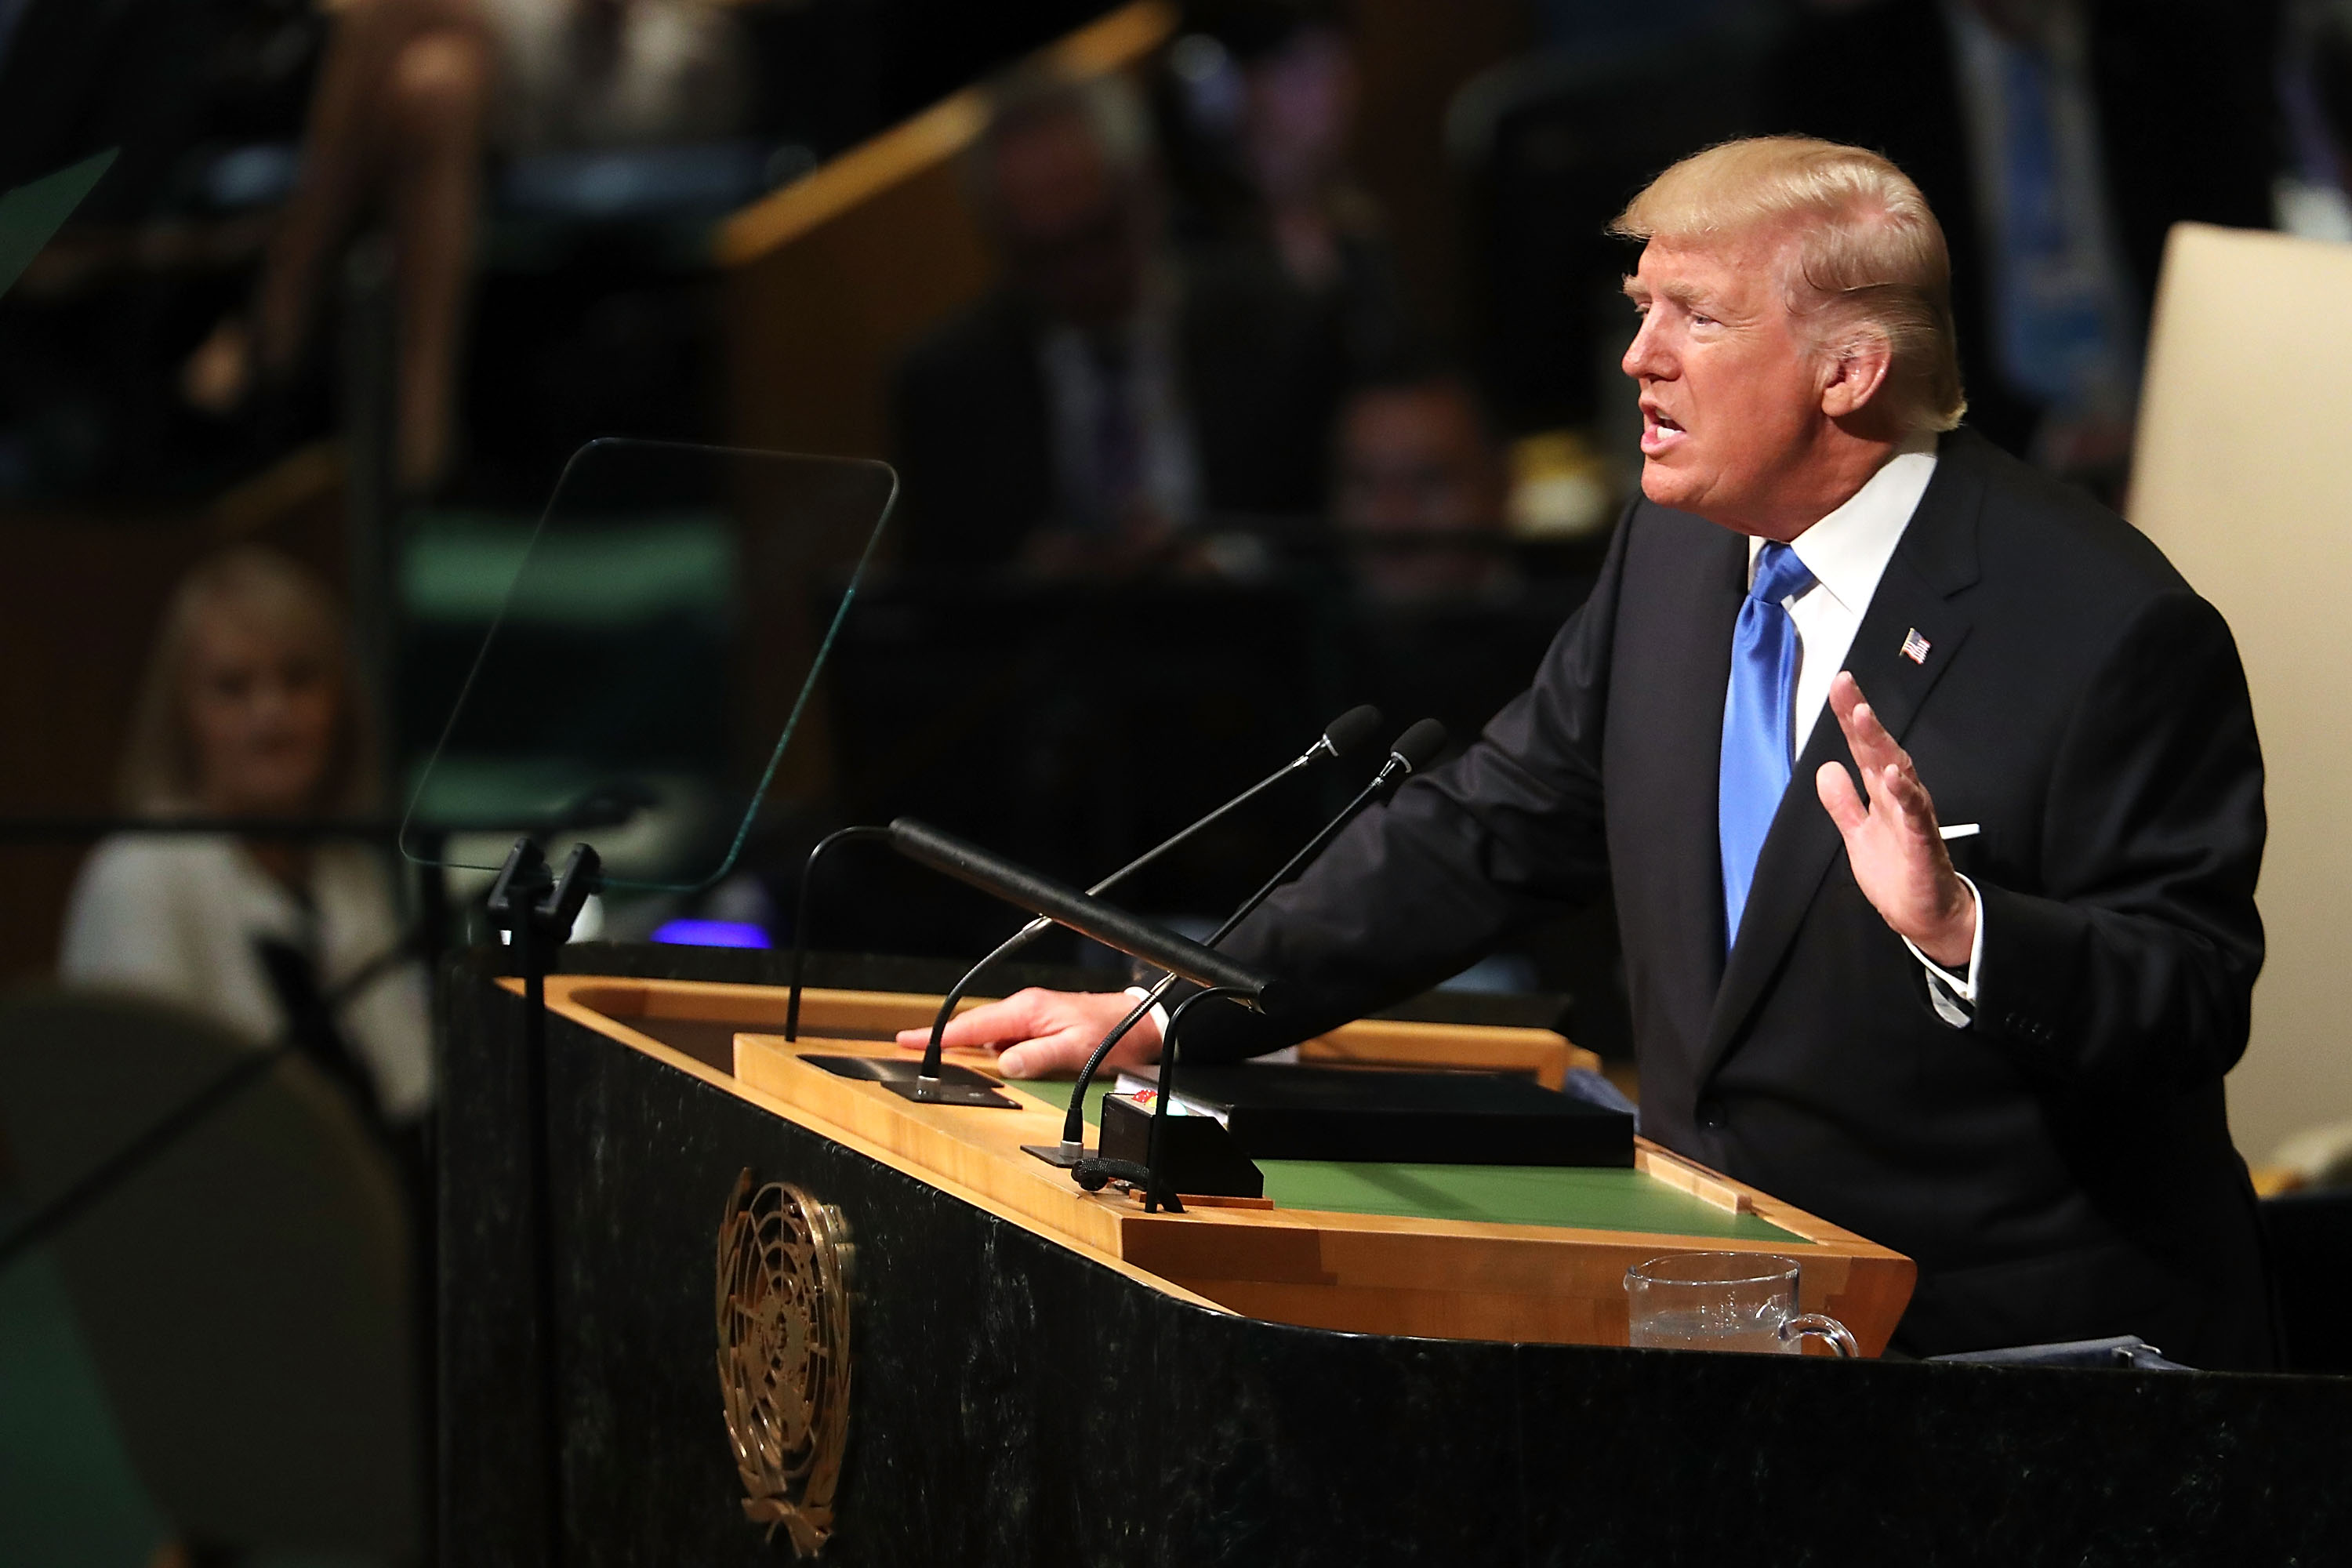 Trump speaks to world leaders at the 72nd United Nations in 2017